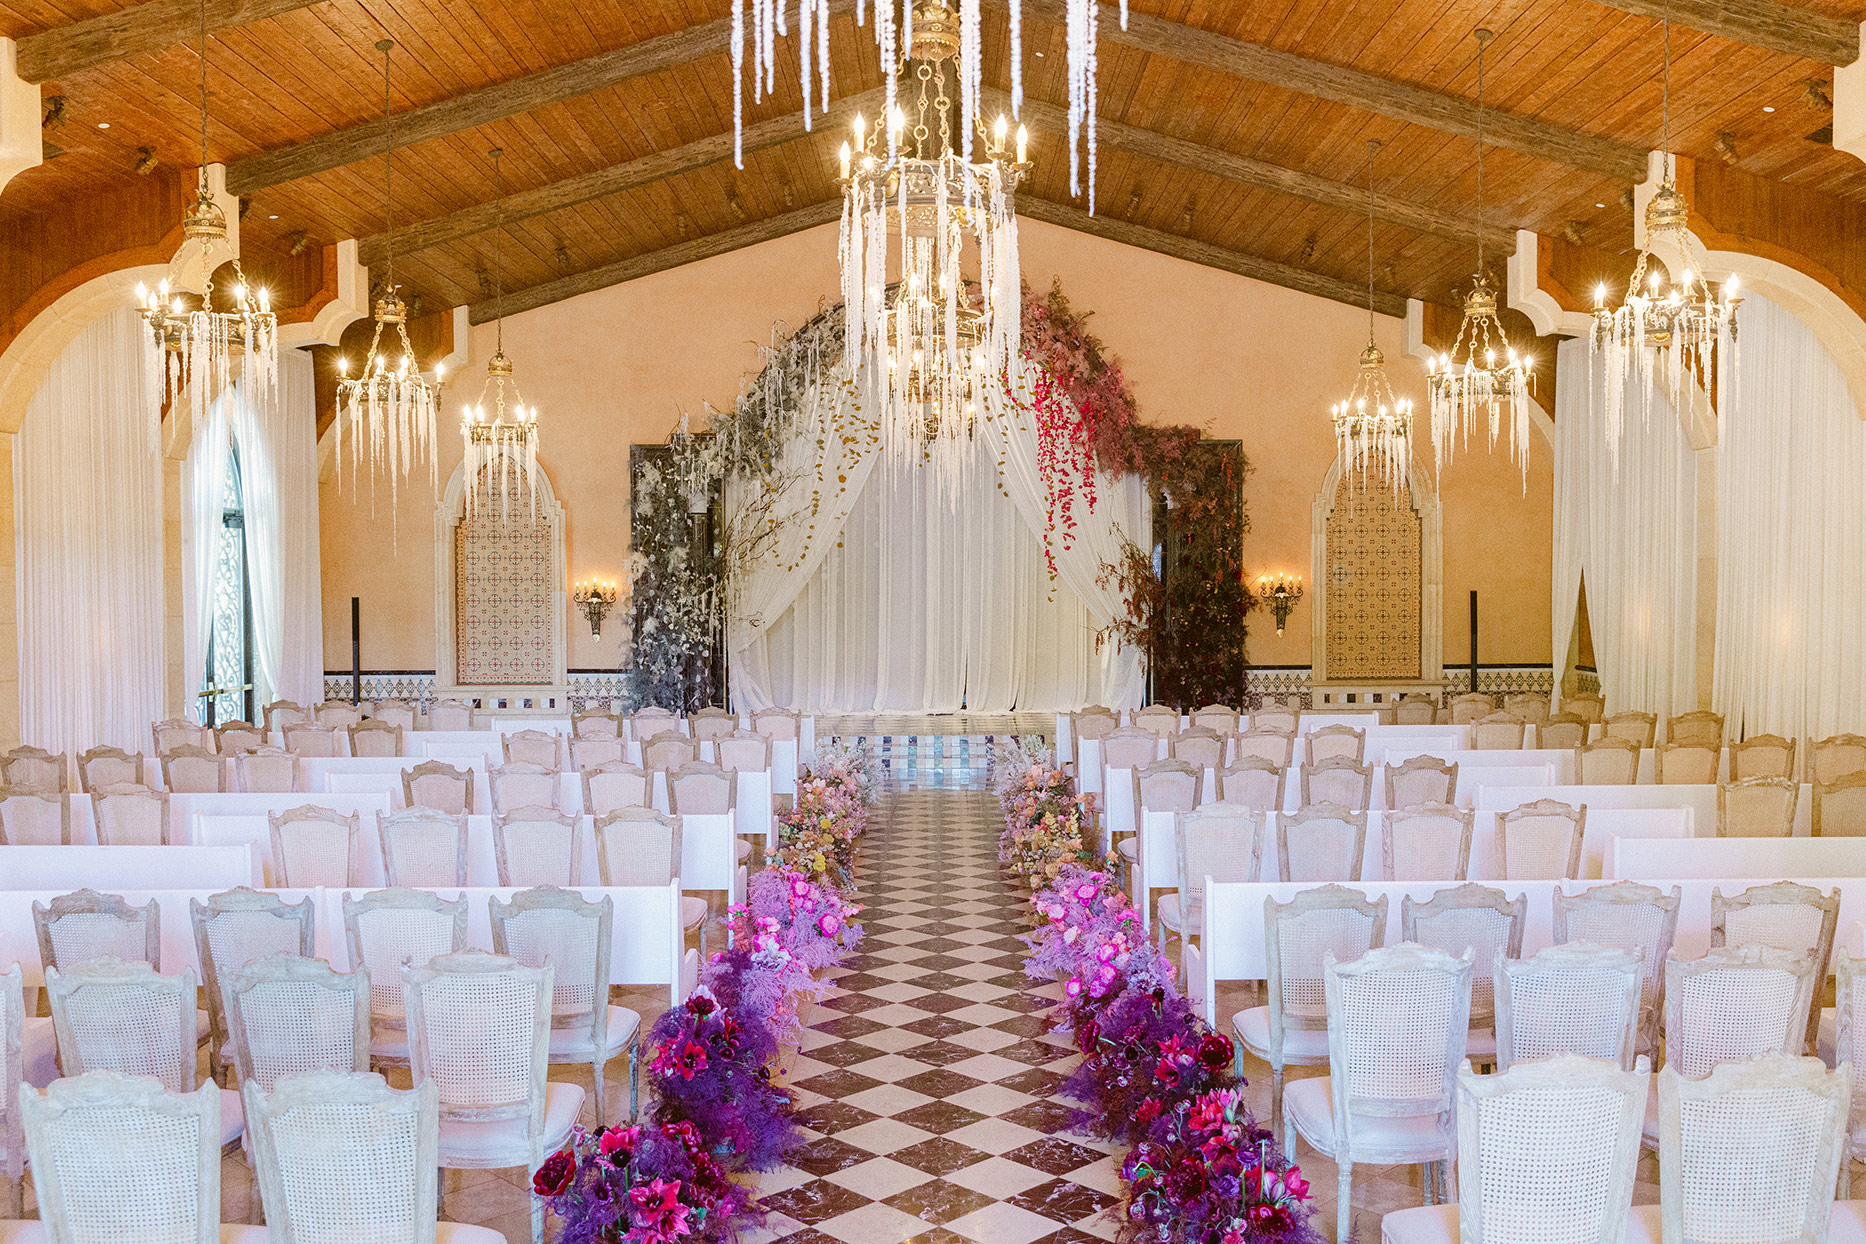 elegant wedding ceremony location with feather and flower bouquets lining the aisle